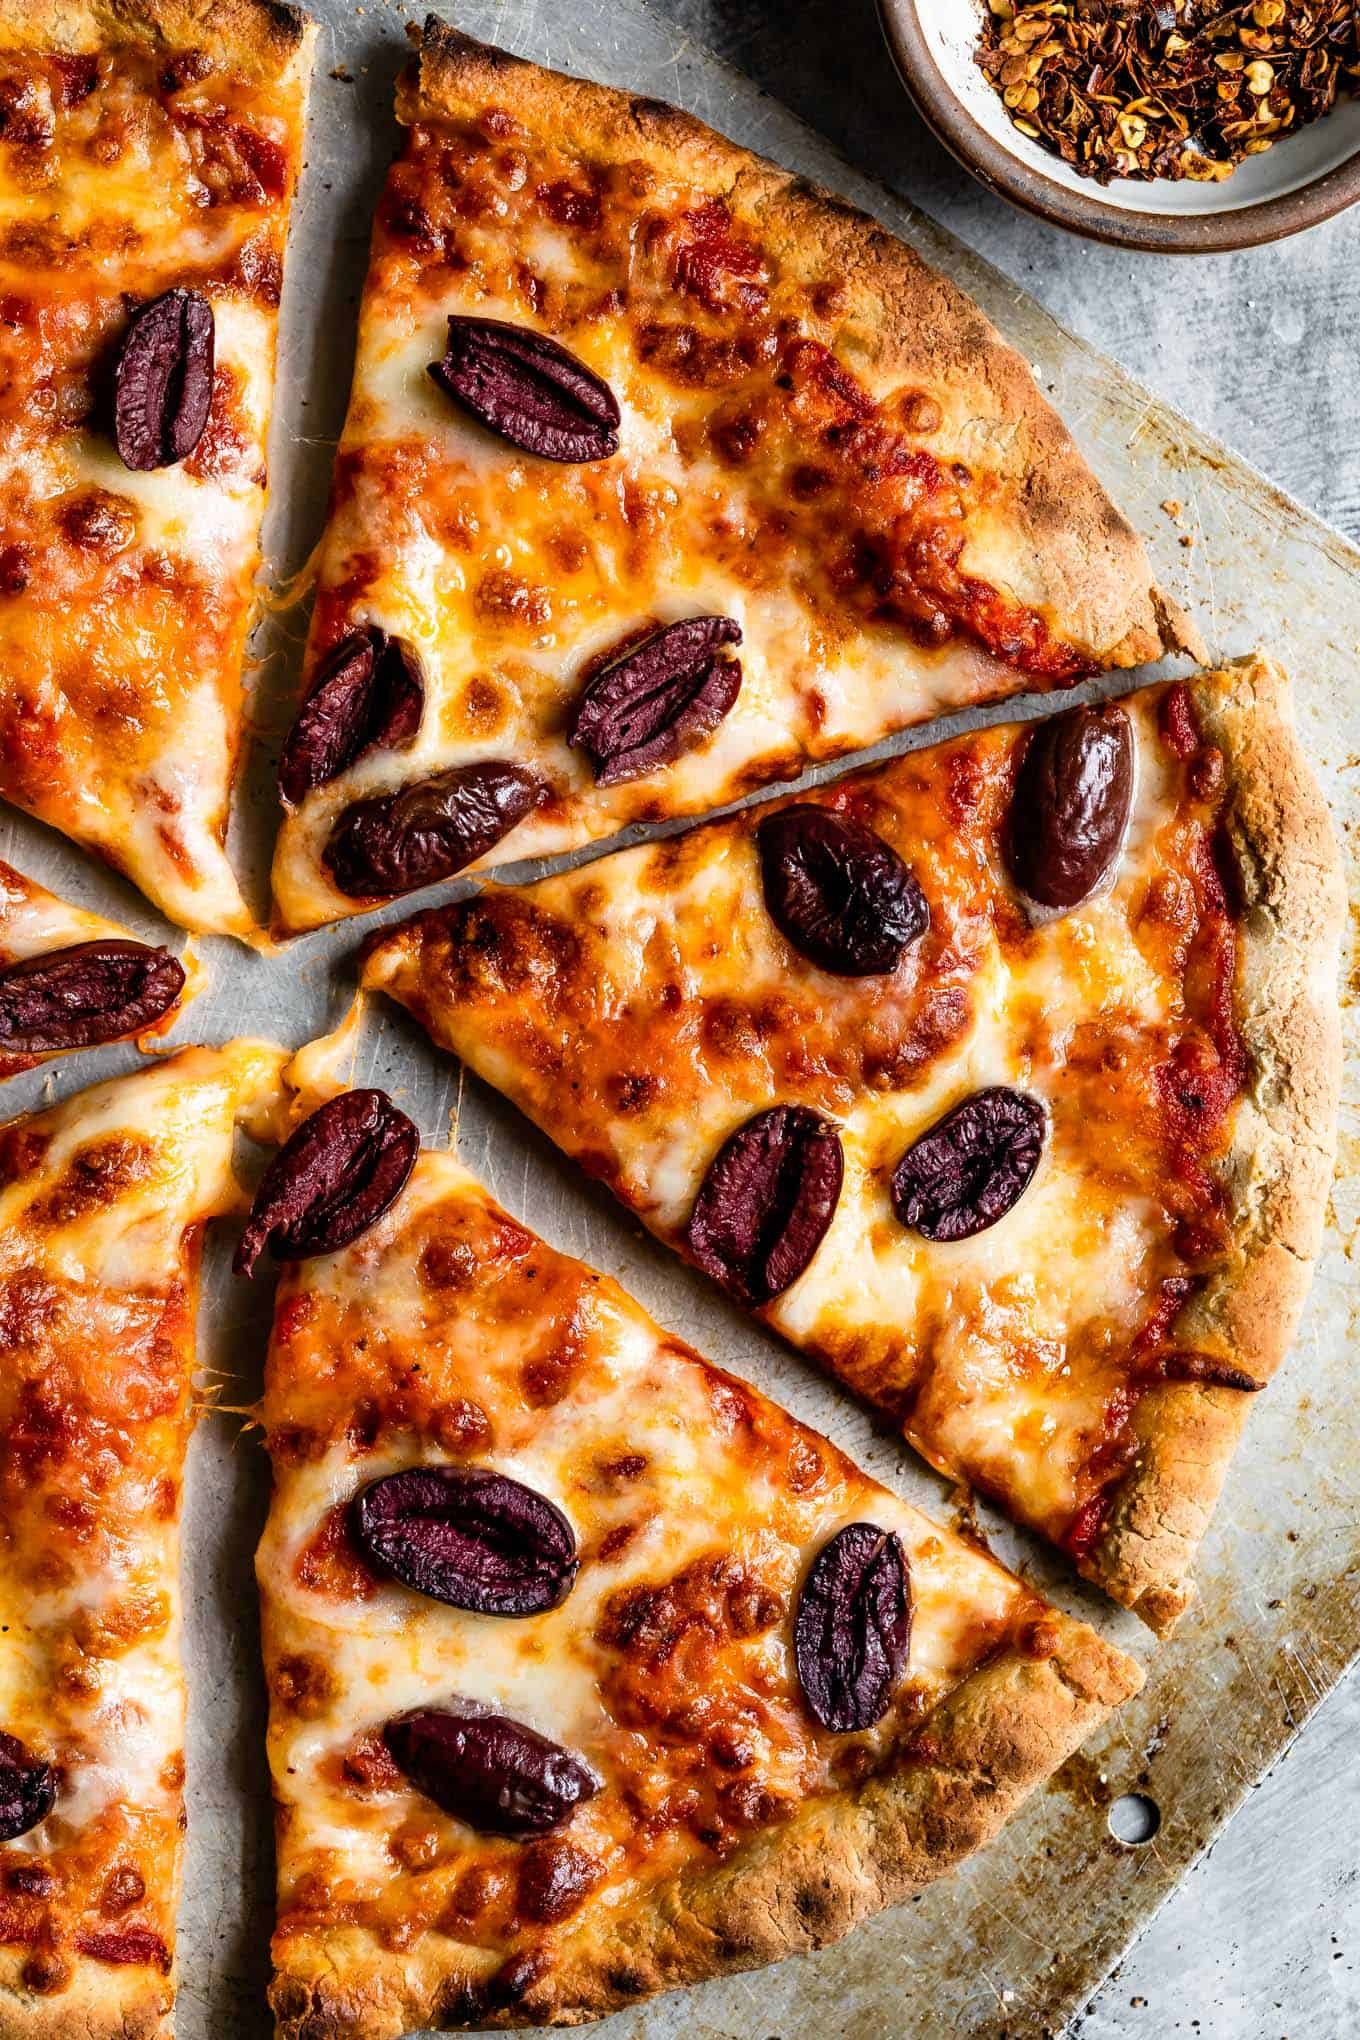 Best Gluten-Free Pizza